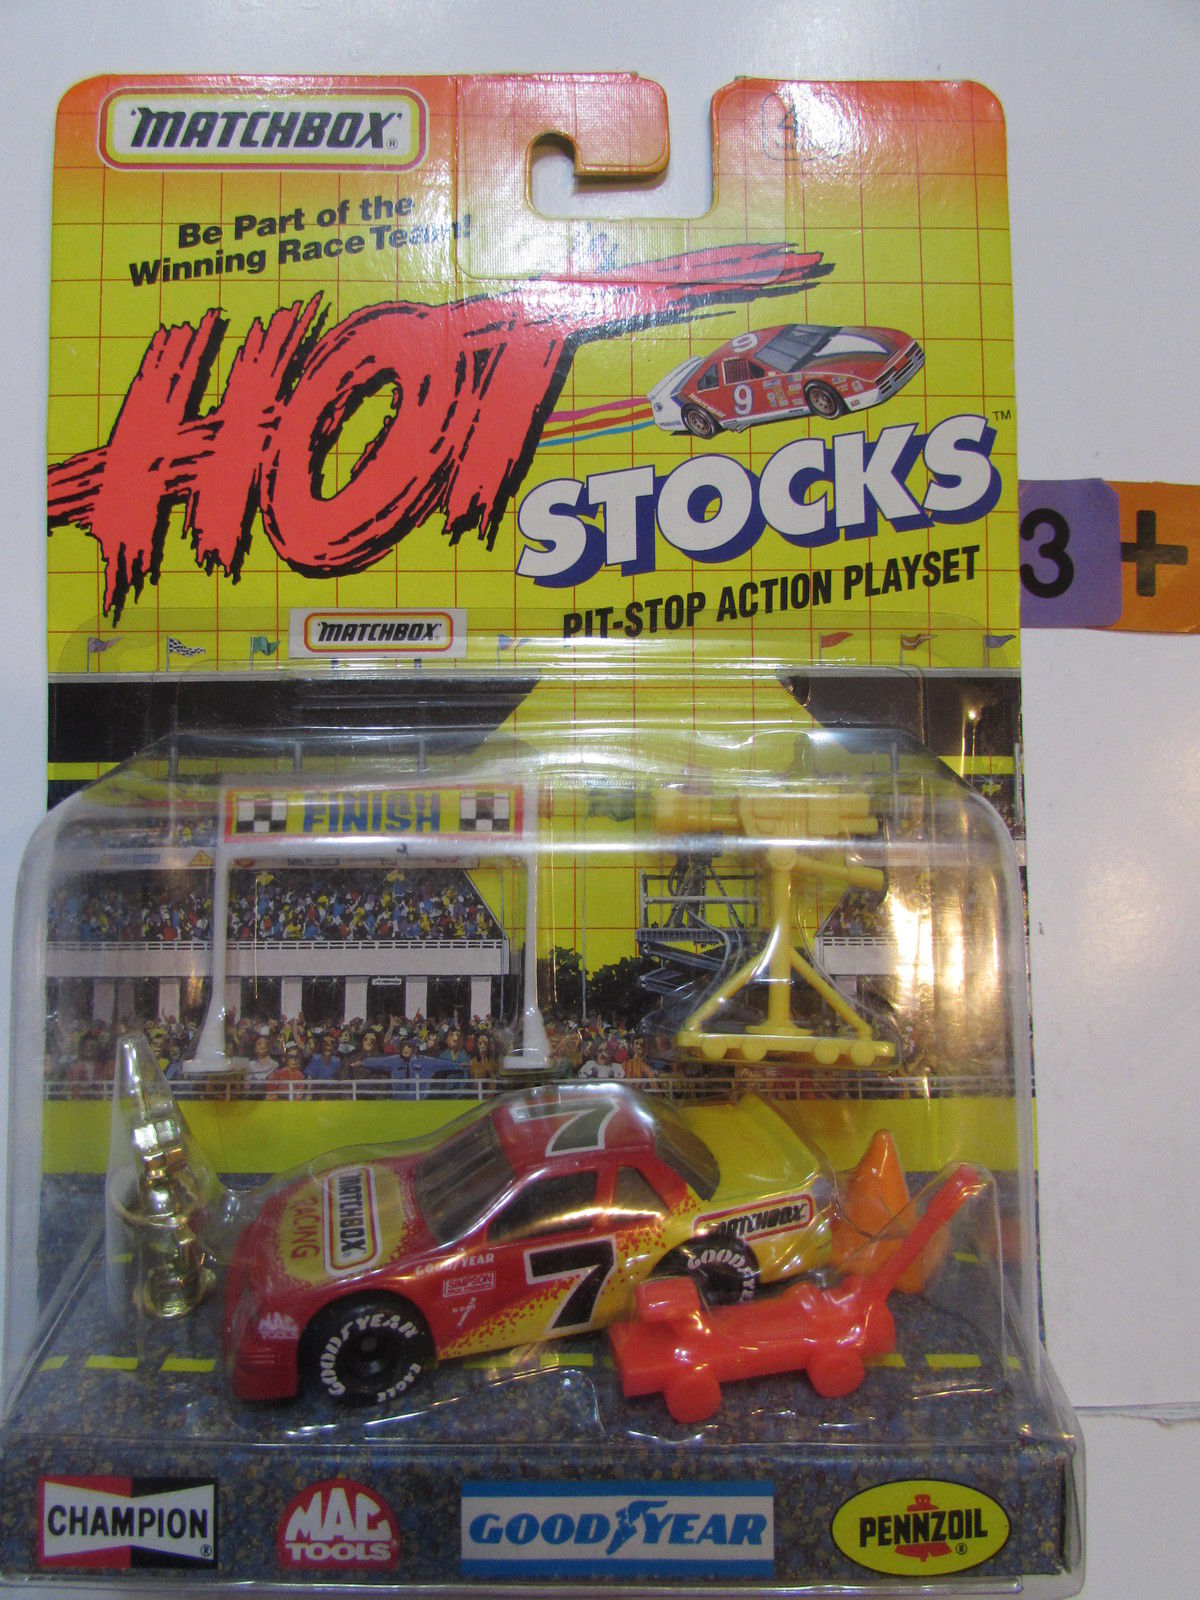 MATCHBOX 1991 HOT STOCKS PIT - STOP ACTION PLAYLIST RACING #11